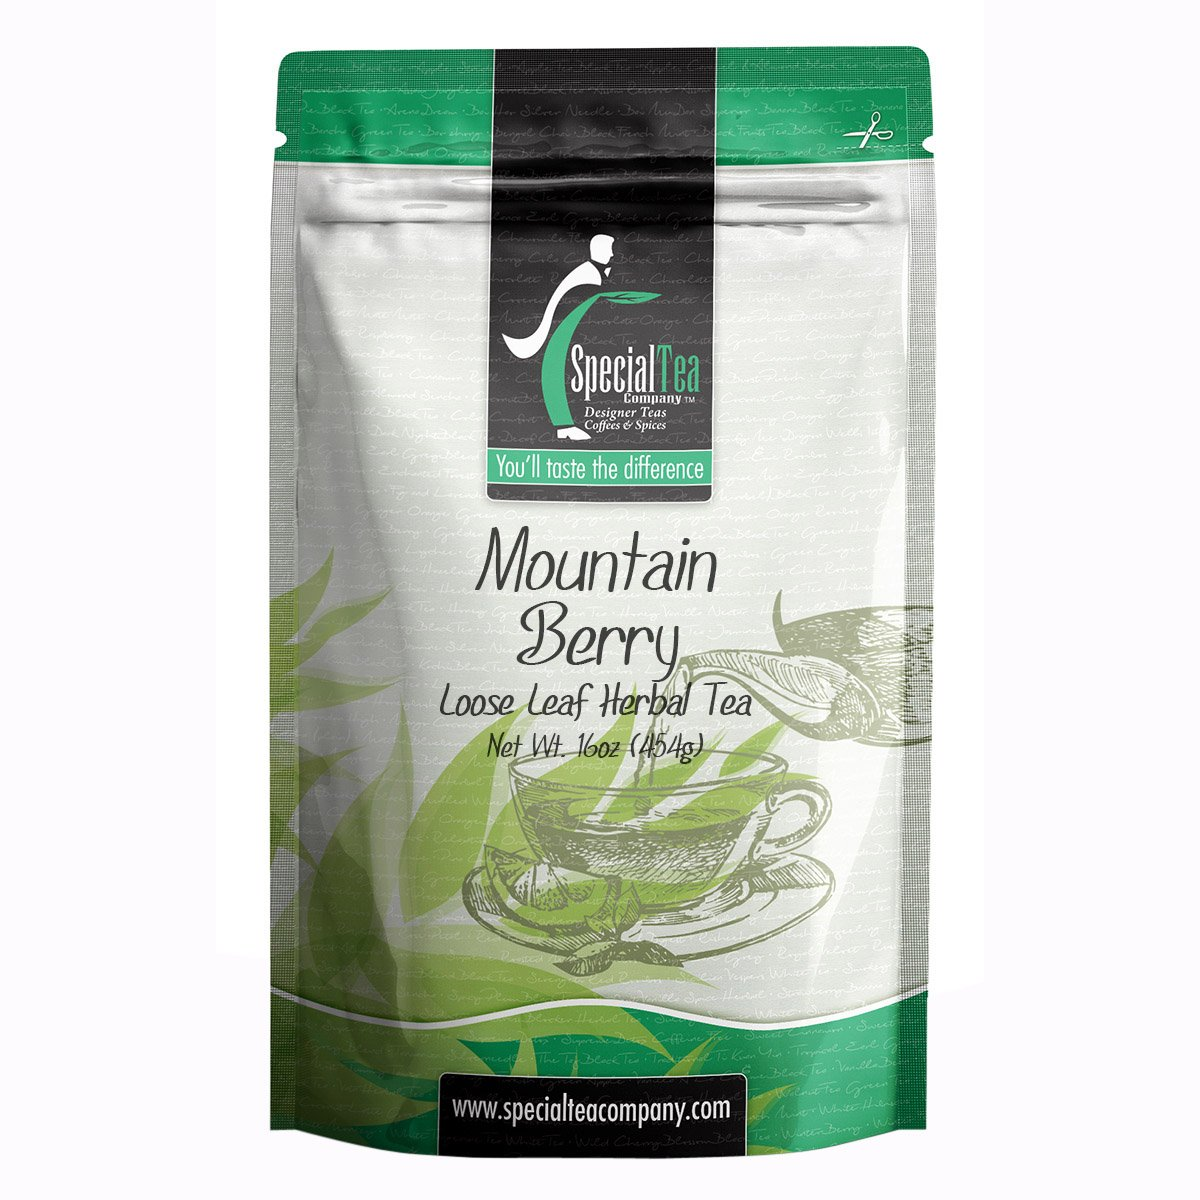 B0756RLV3Y Special Tea Company Mountain Berry Herbal Tea, Loose Leaf 16 oz. 71-99bX4UZL